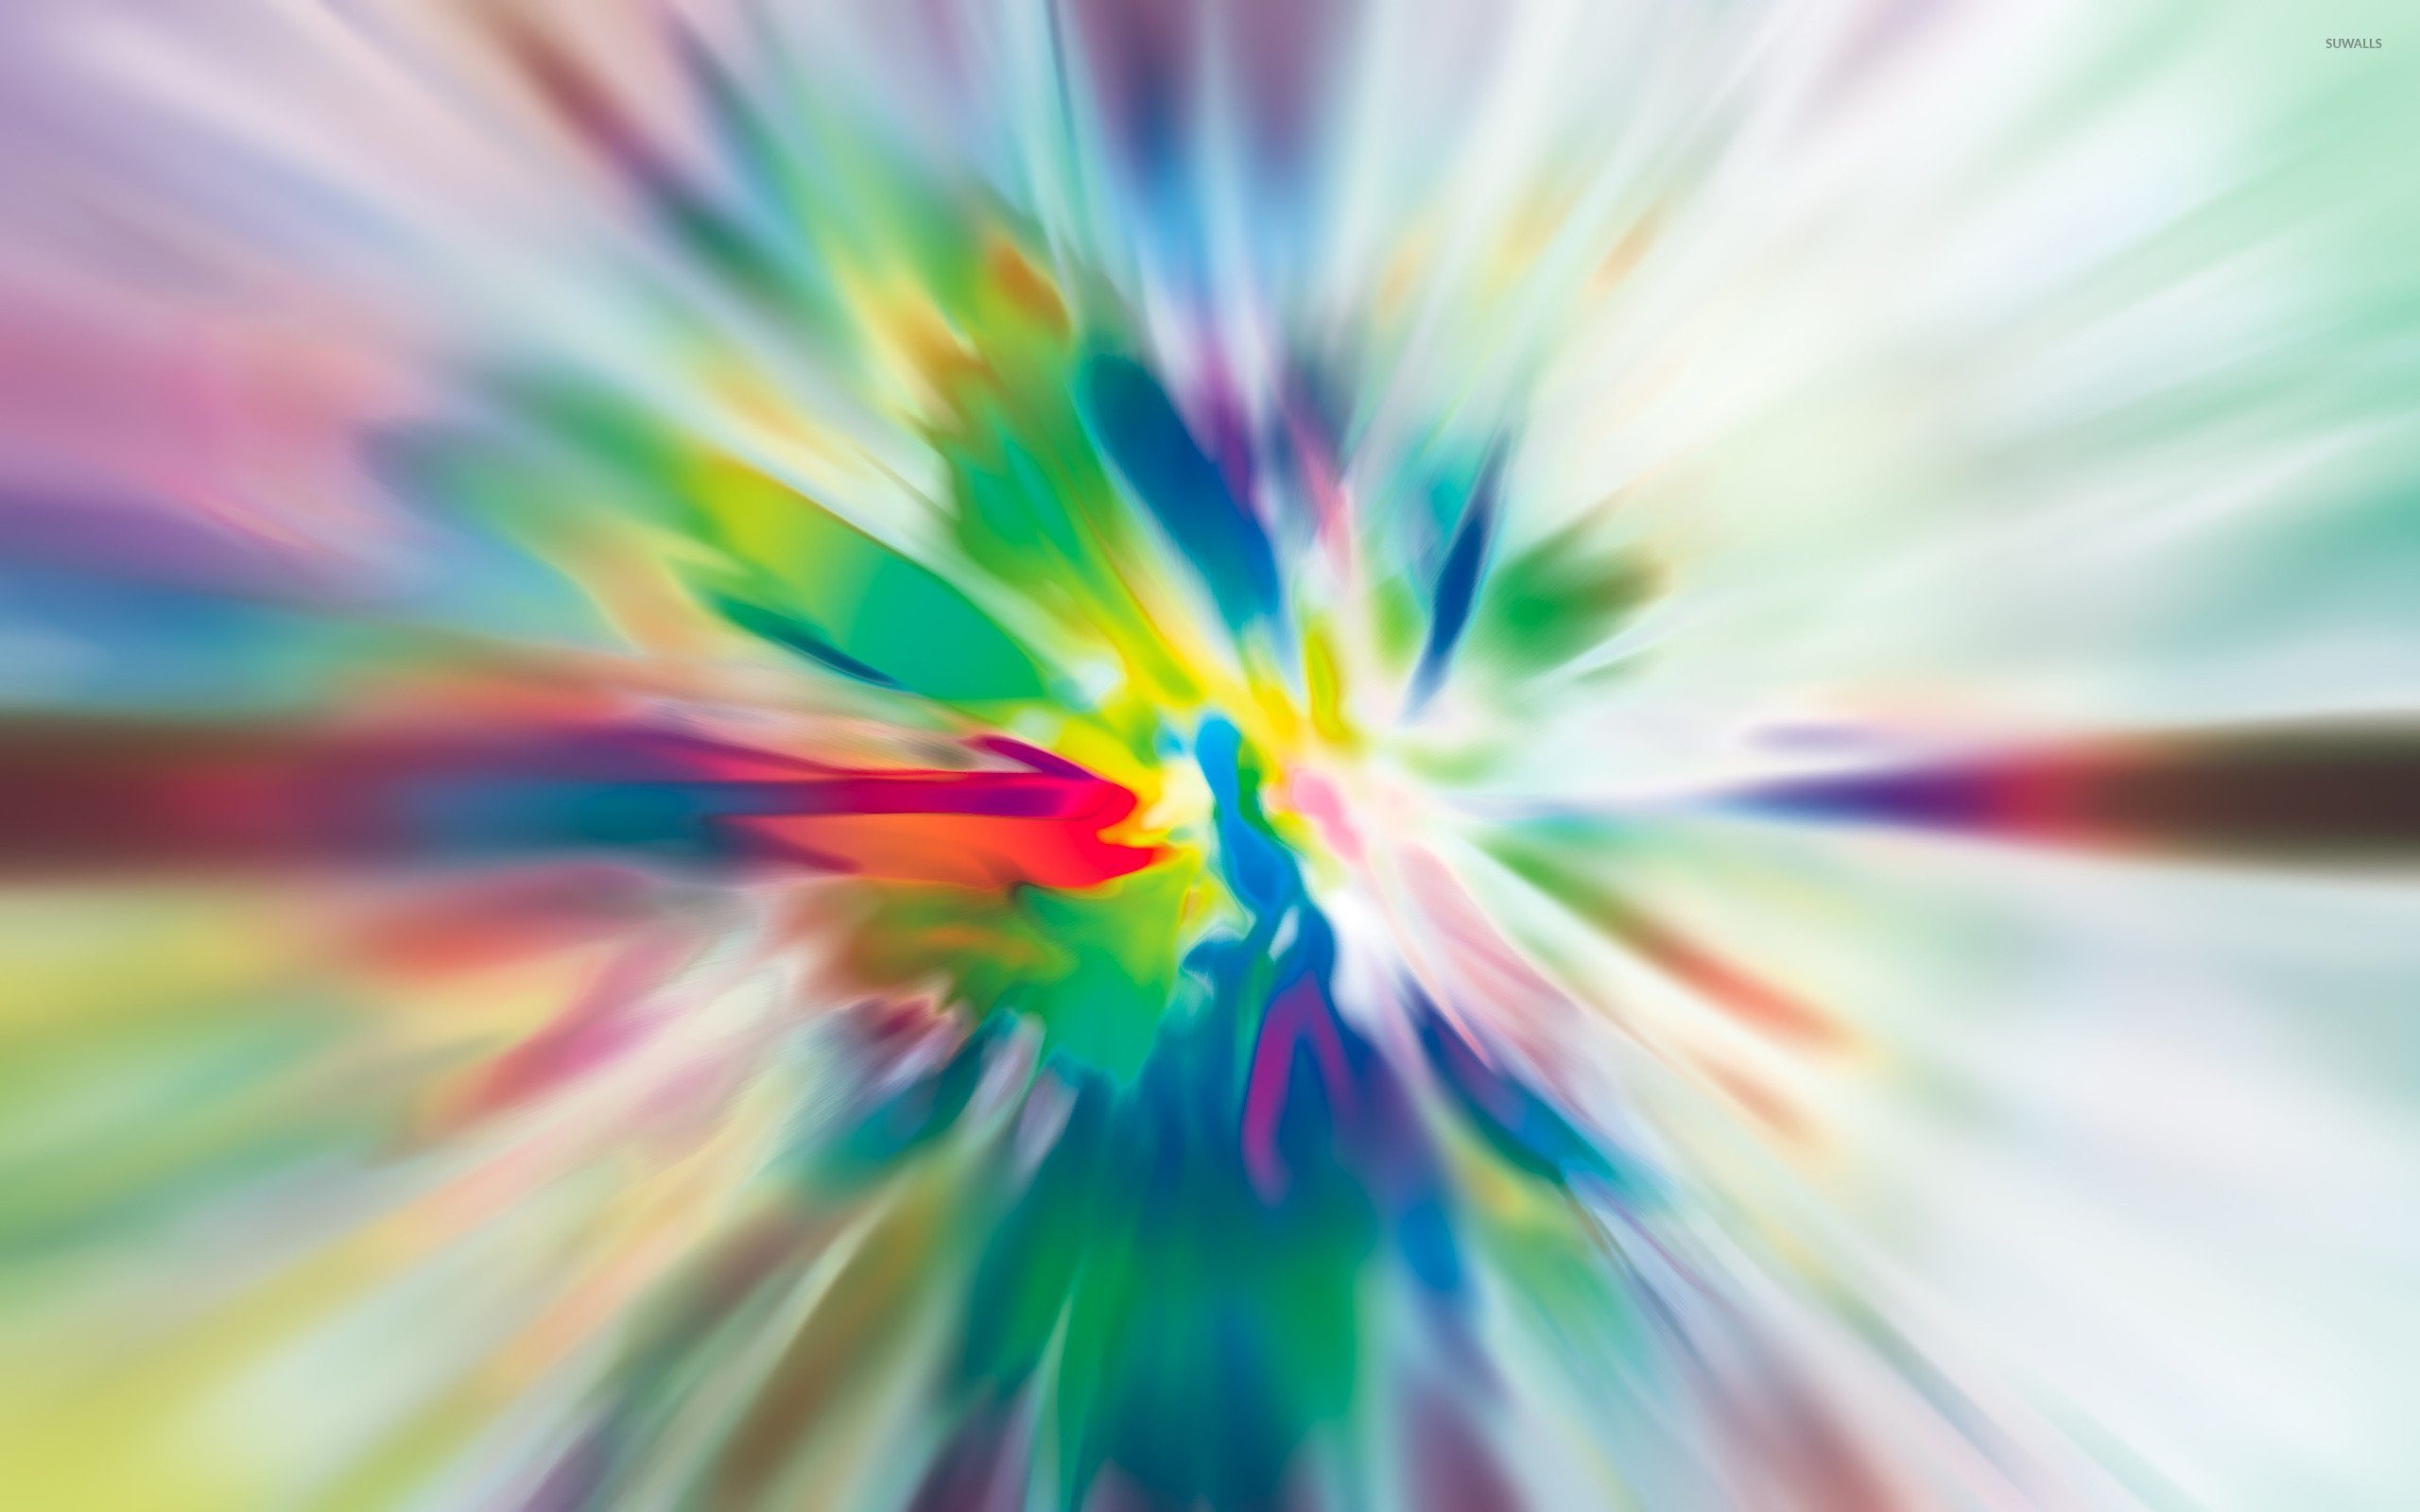 Paint wallpaper   Abstract wallpapers   17865 2560x1600